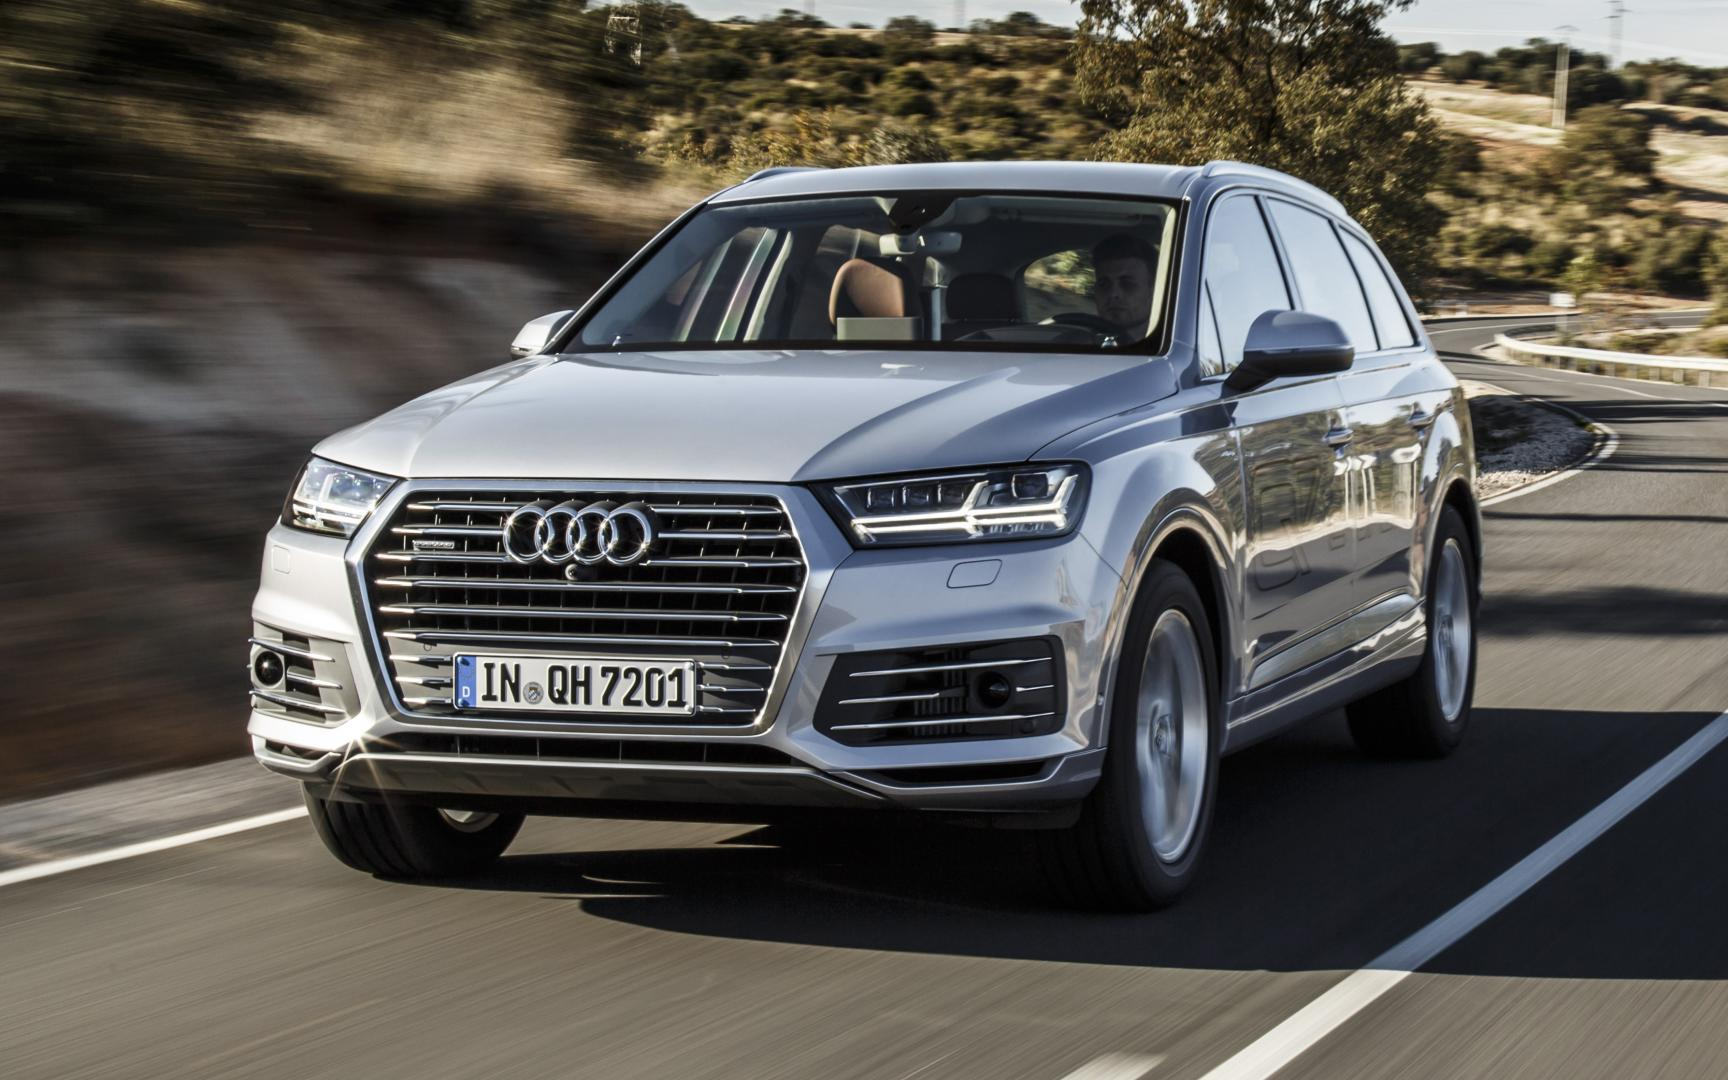 2019 Audi Q7 e tron 3.0 TDI quattro photo - 5